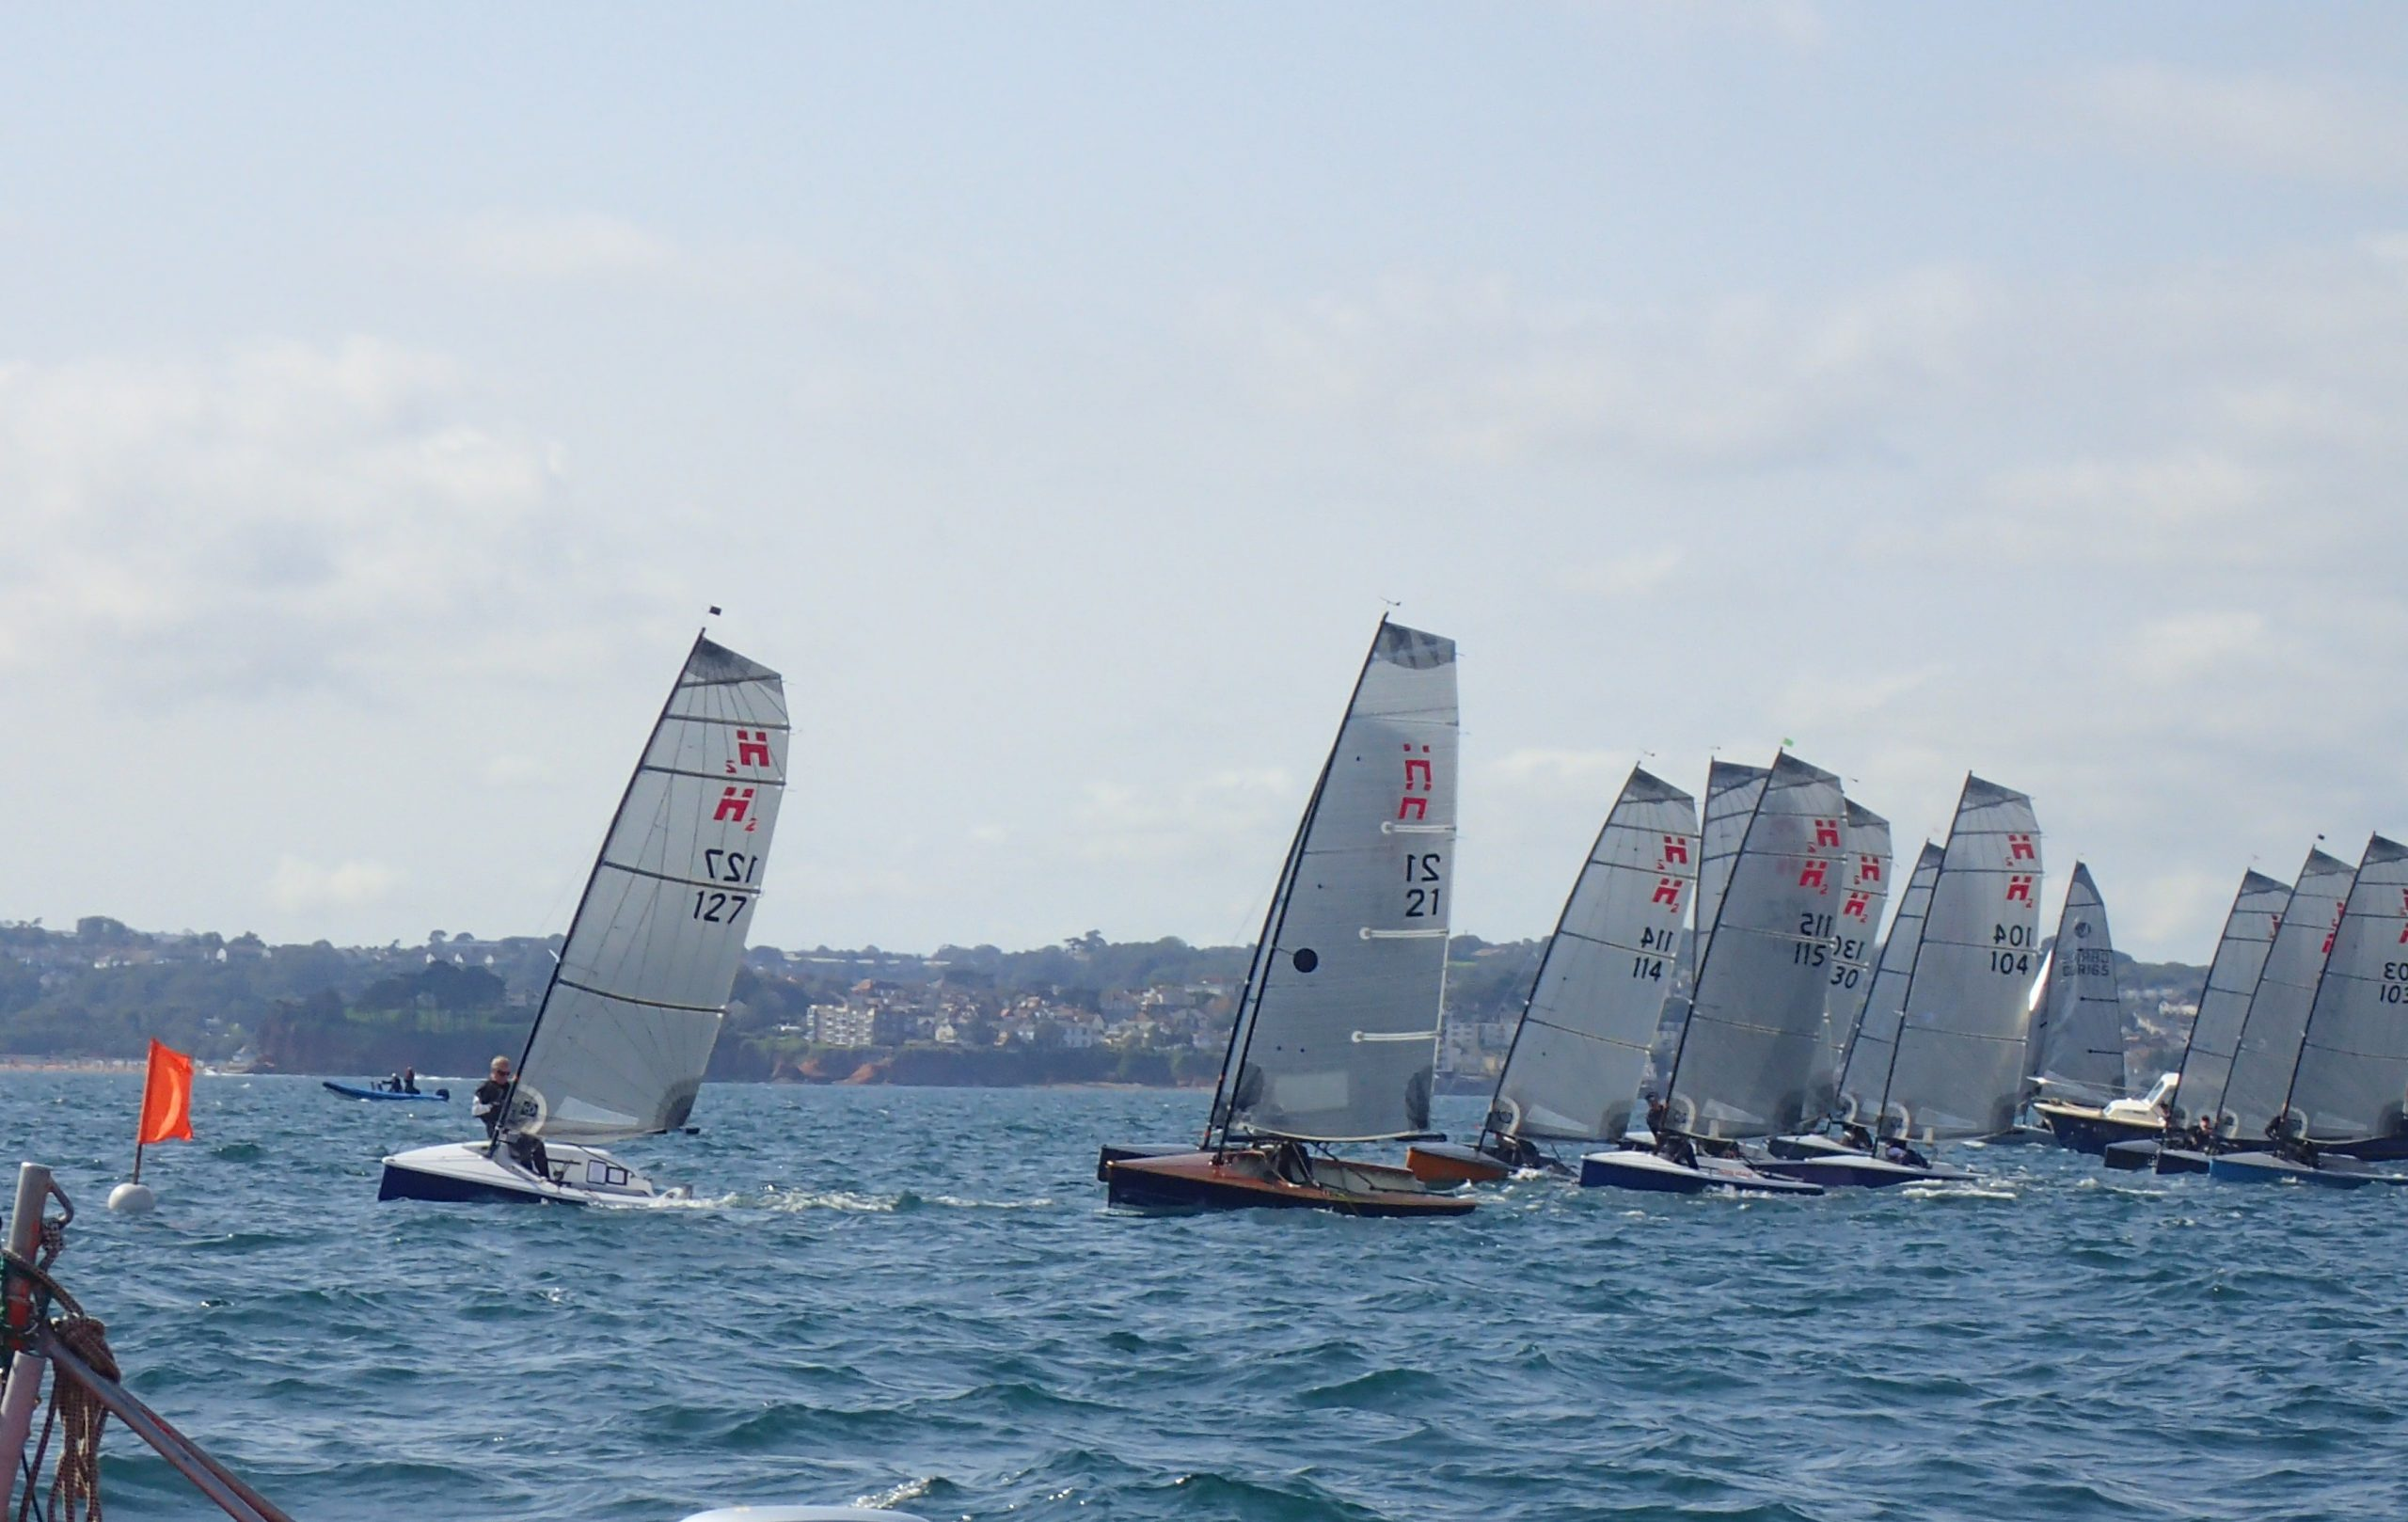 Hadron h2 dinghys starting a race at the nationals